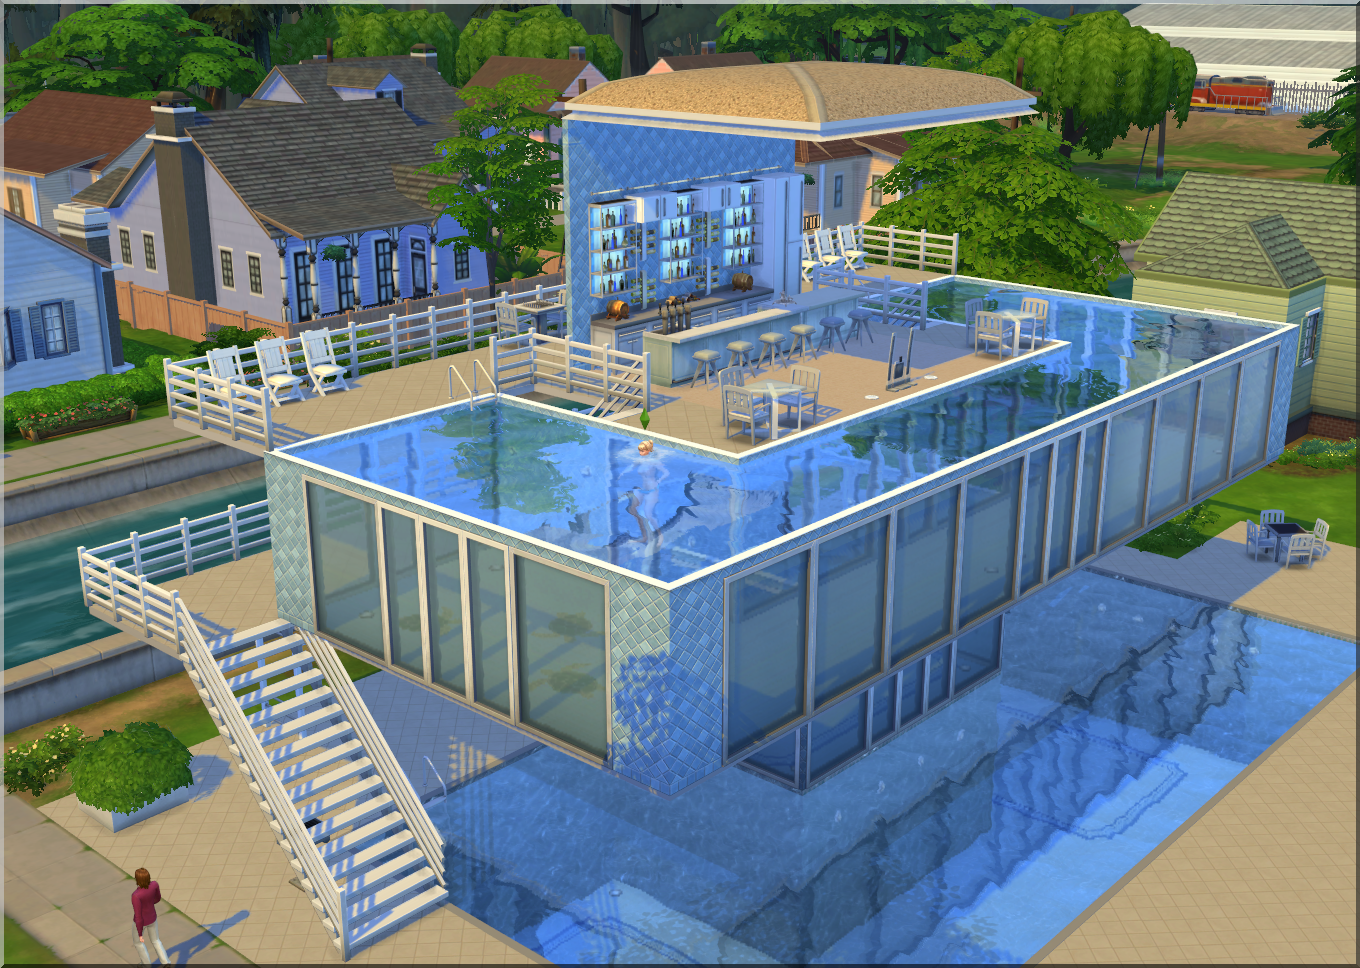 Arda sims waterland for Pool design sims 4